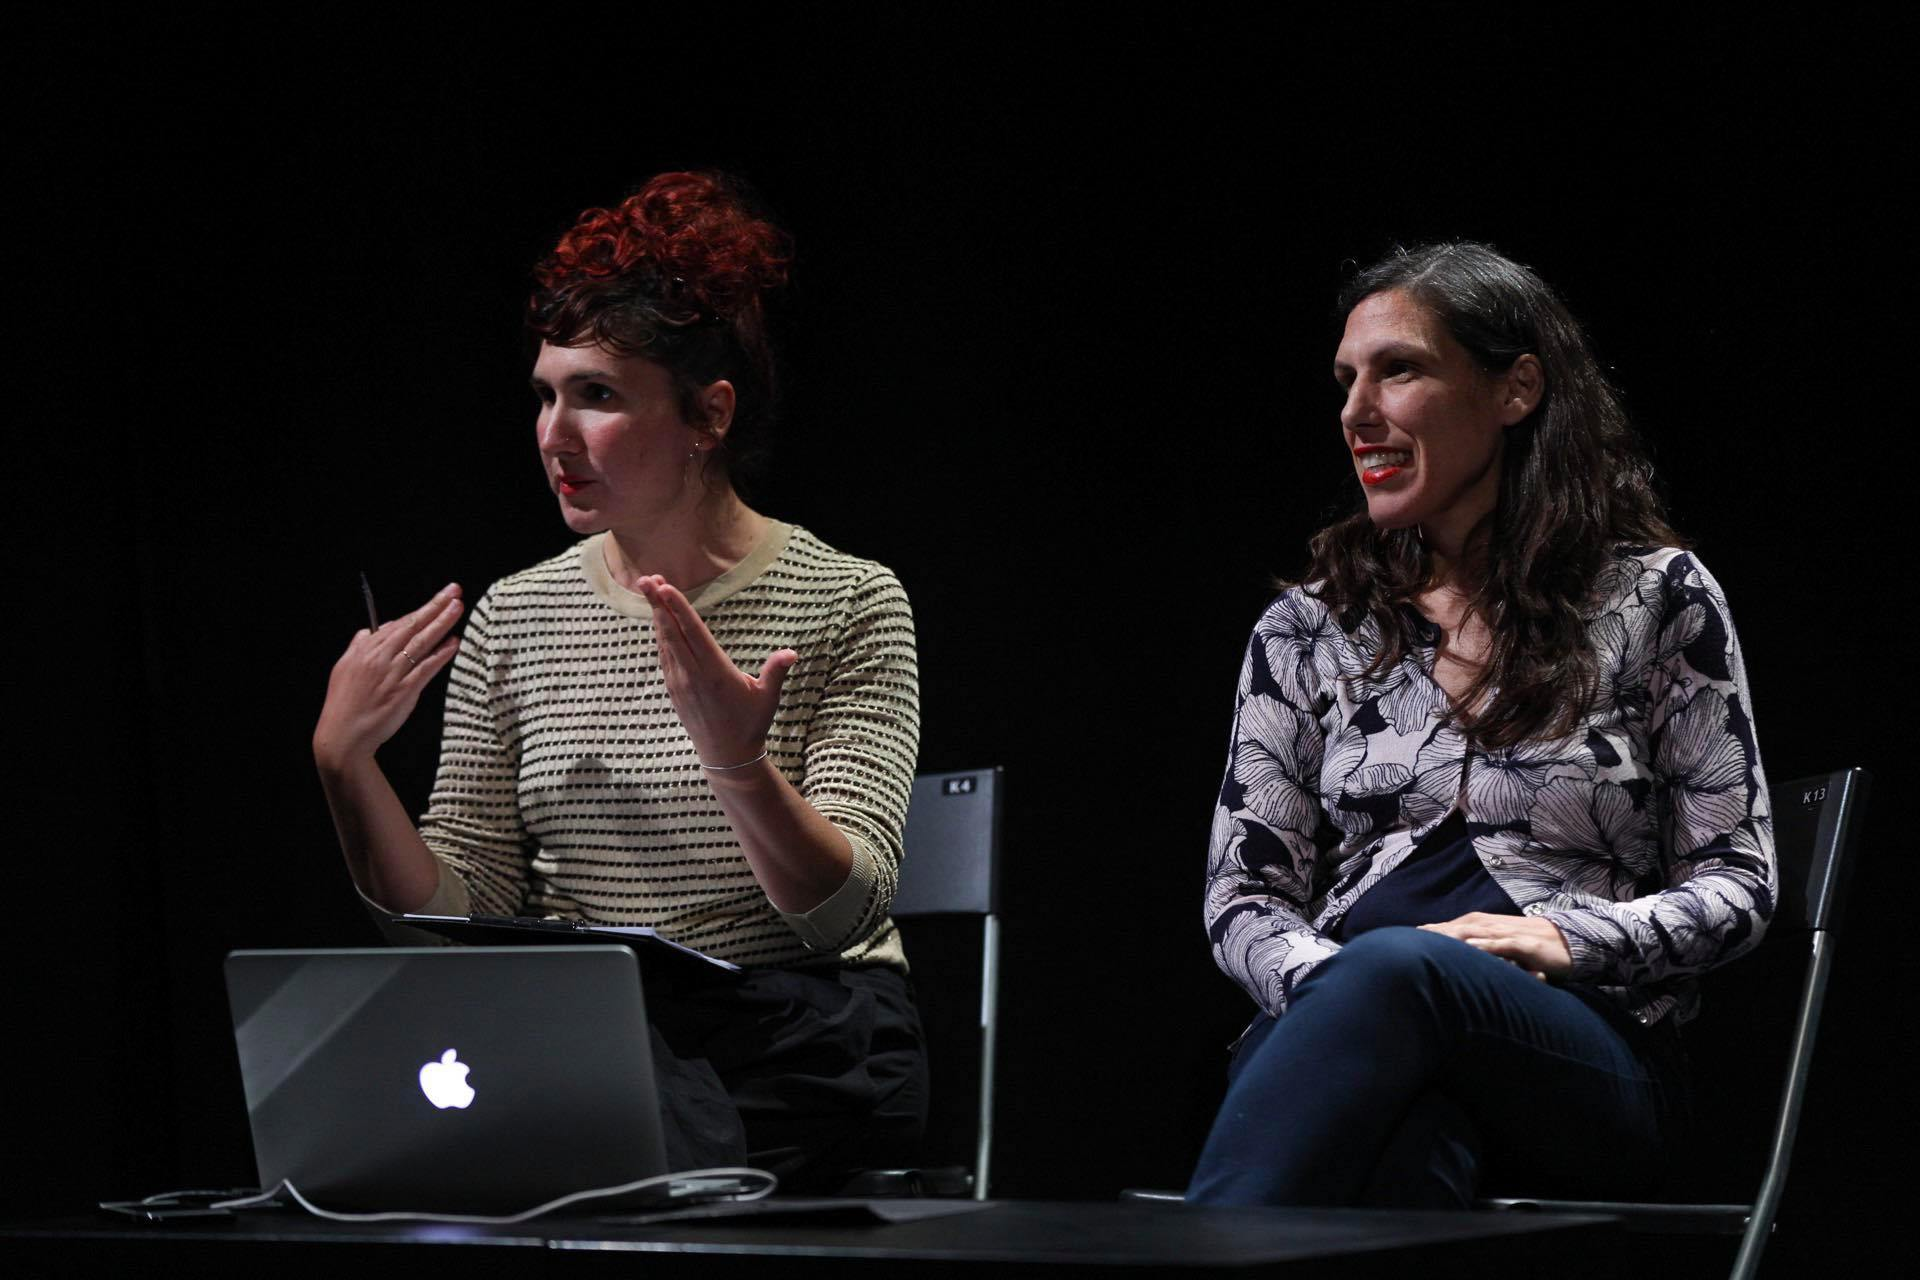 ARC_Dialogues - Sofia Mavragani - Chrysanthi Badeka - photo by RGB Studios